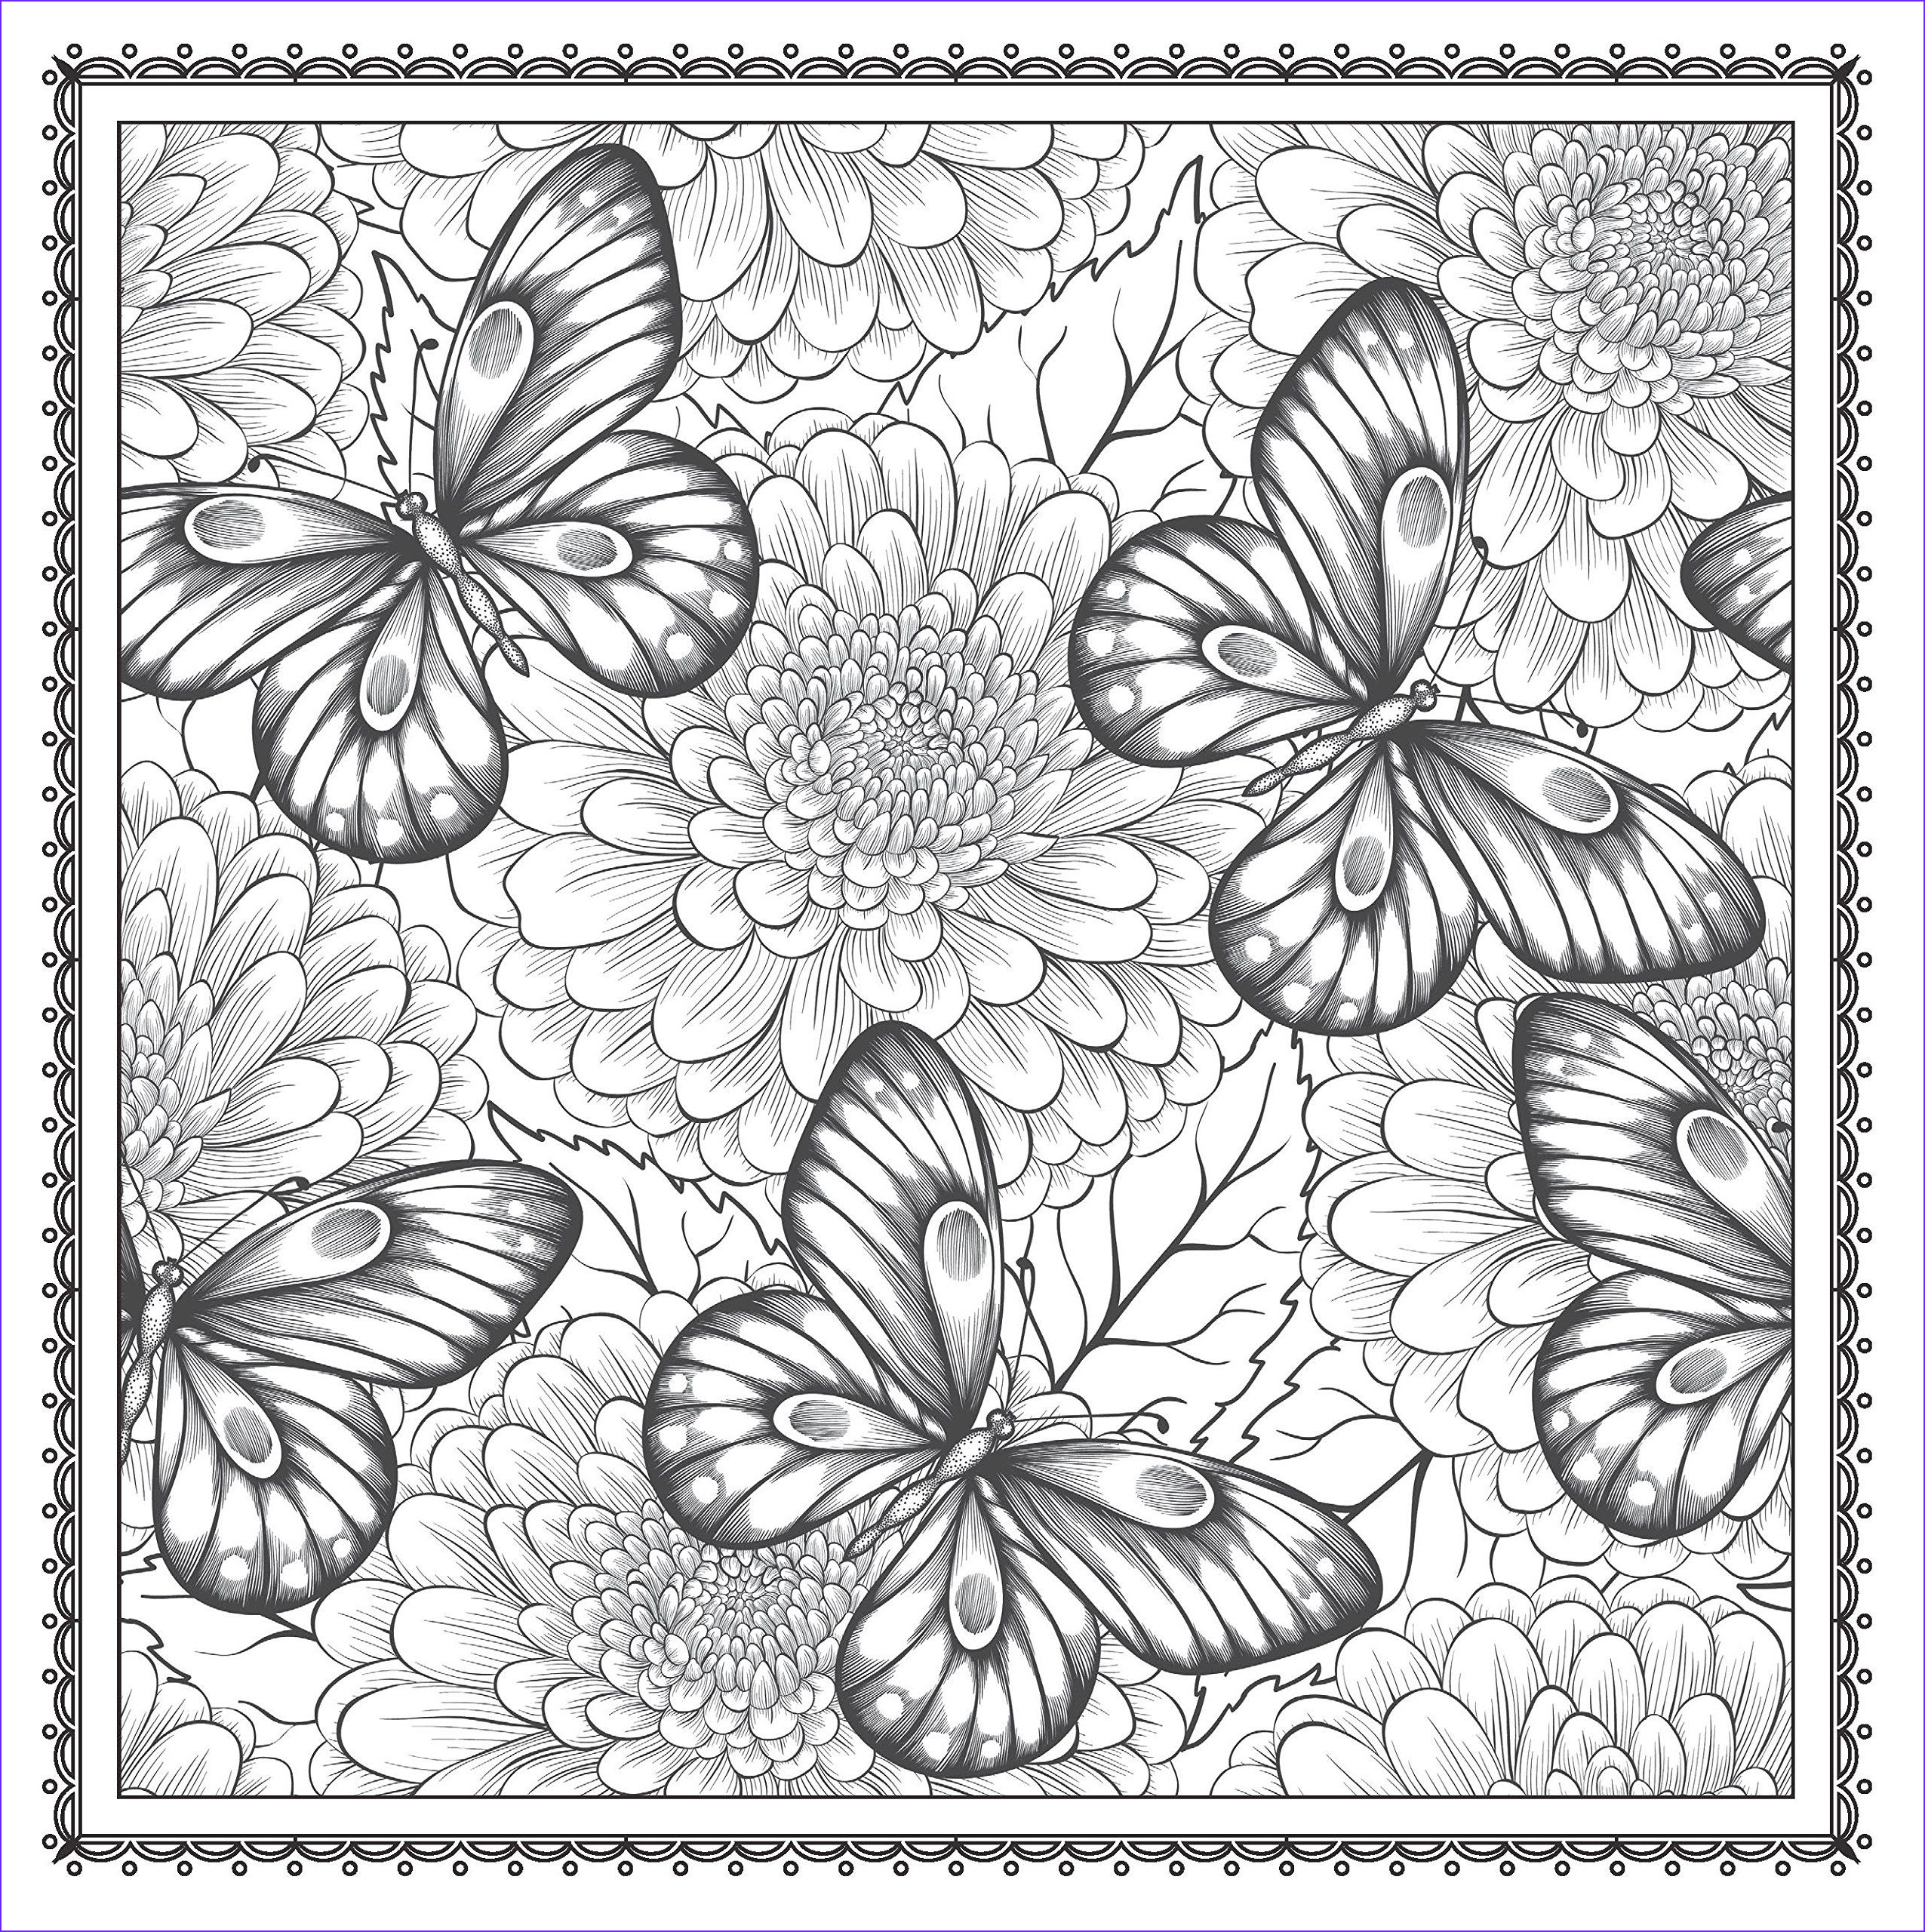 Magical Garden Coloring Book Awesome Photos Amazon Blossom Magic Beautiful Floral Patterns